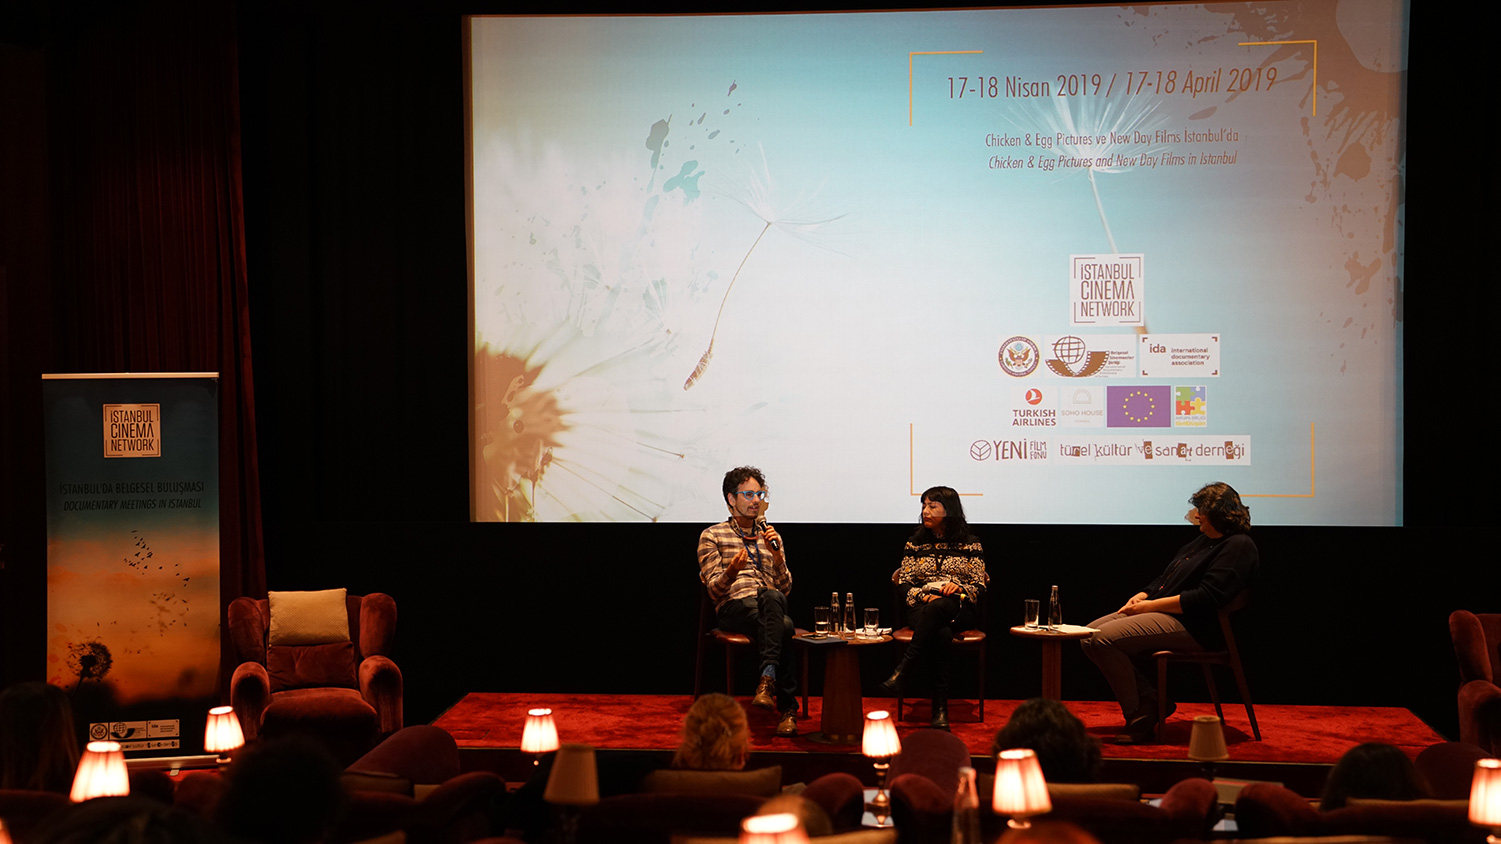 Istanbul Cinema Network's panel discussion with Jonathan Skurnik, New Day Films, and Lucila Moctezuma, Chicken and Egg.